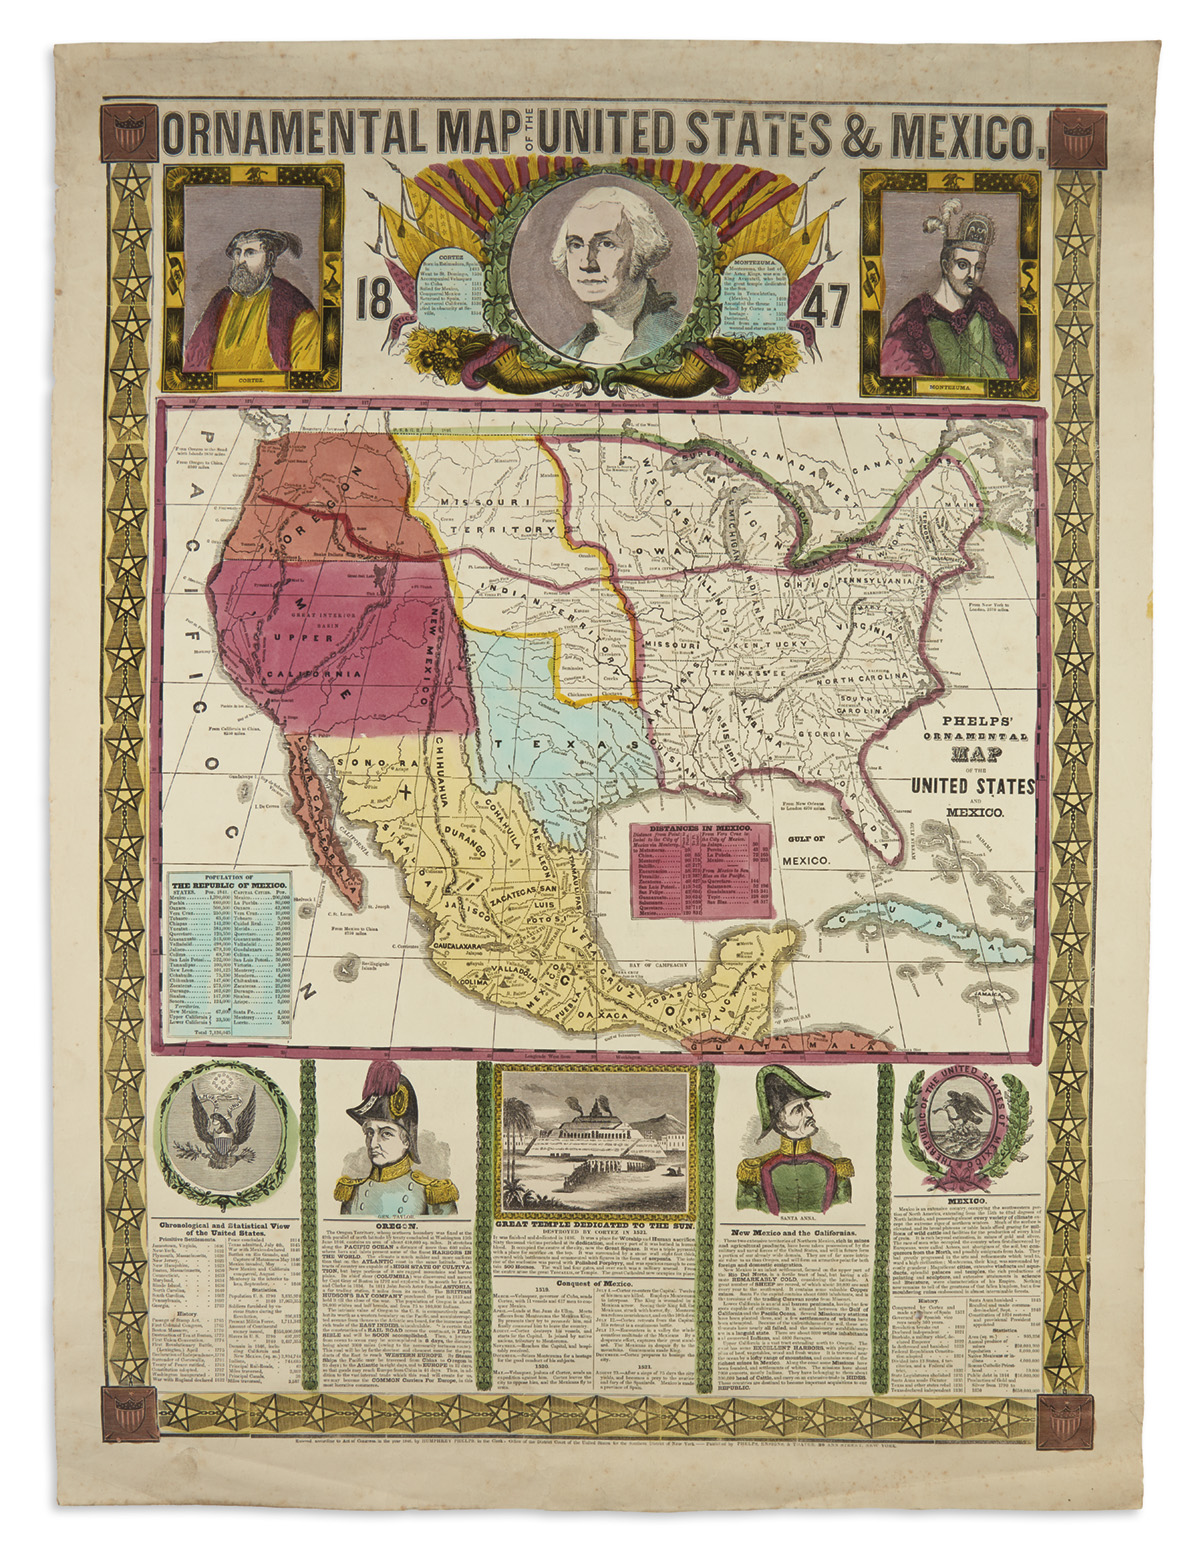 PHELPS-HUMPHREY-Ornamental-Map-of-the-United-States--Mexico